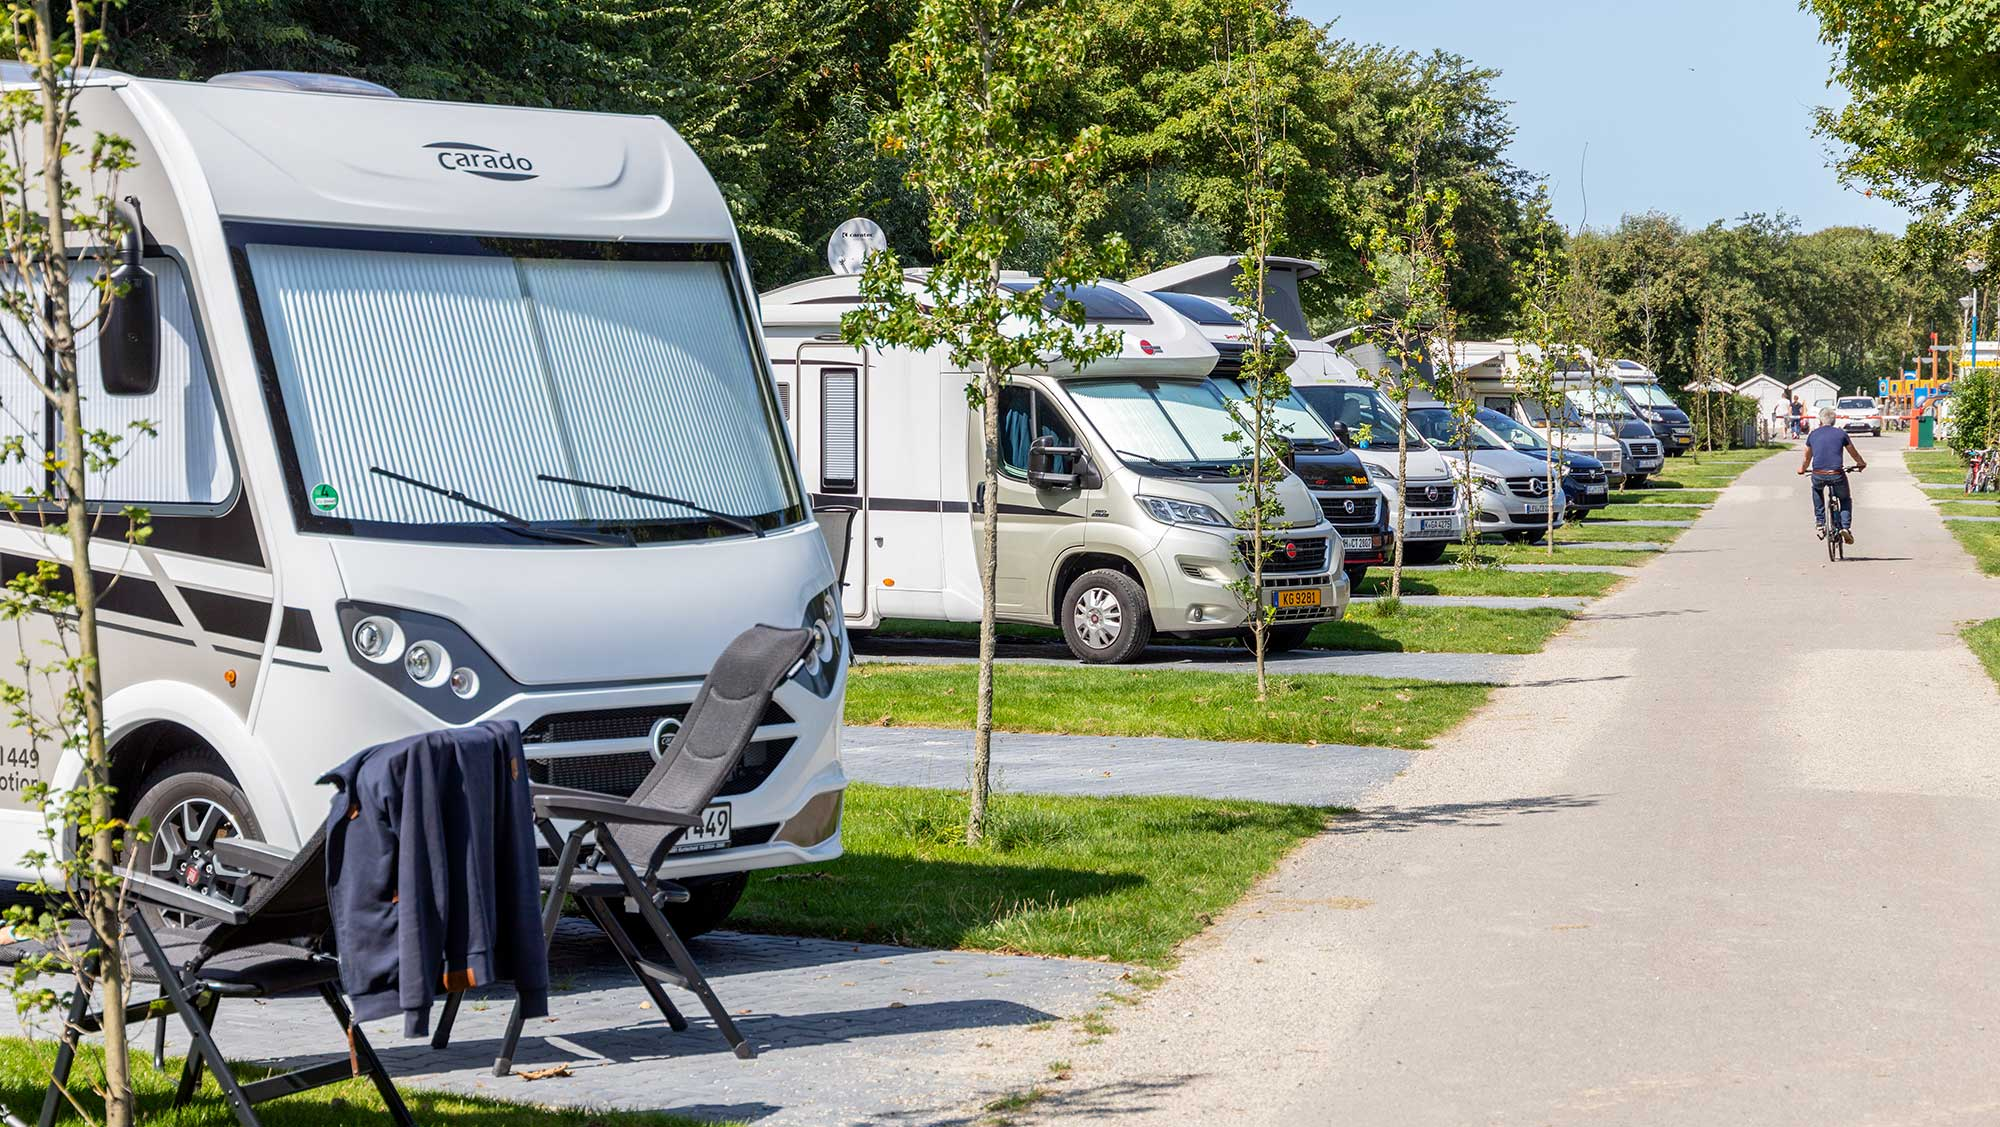 Campercomfortplaats kamperen Molecaten Park Hoogduin 01